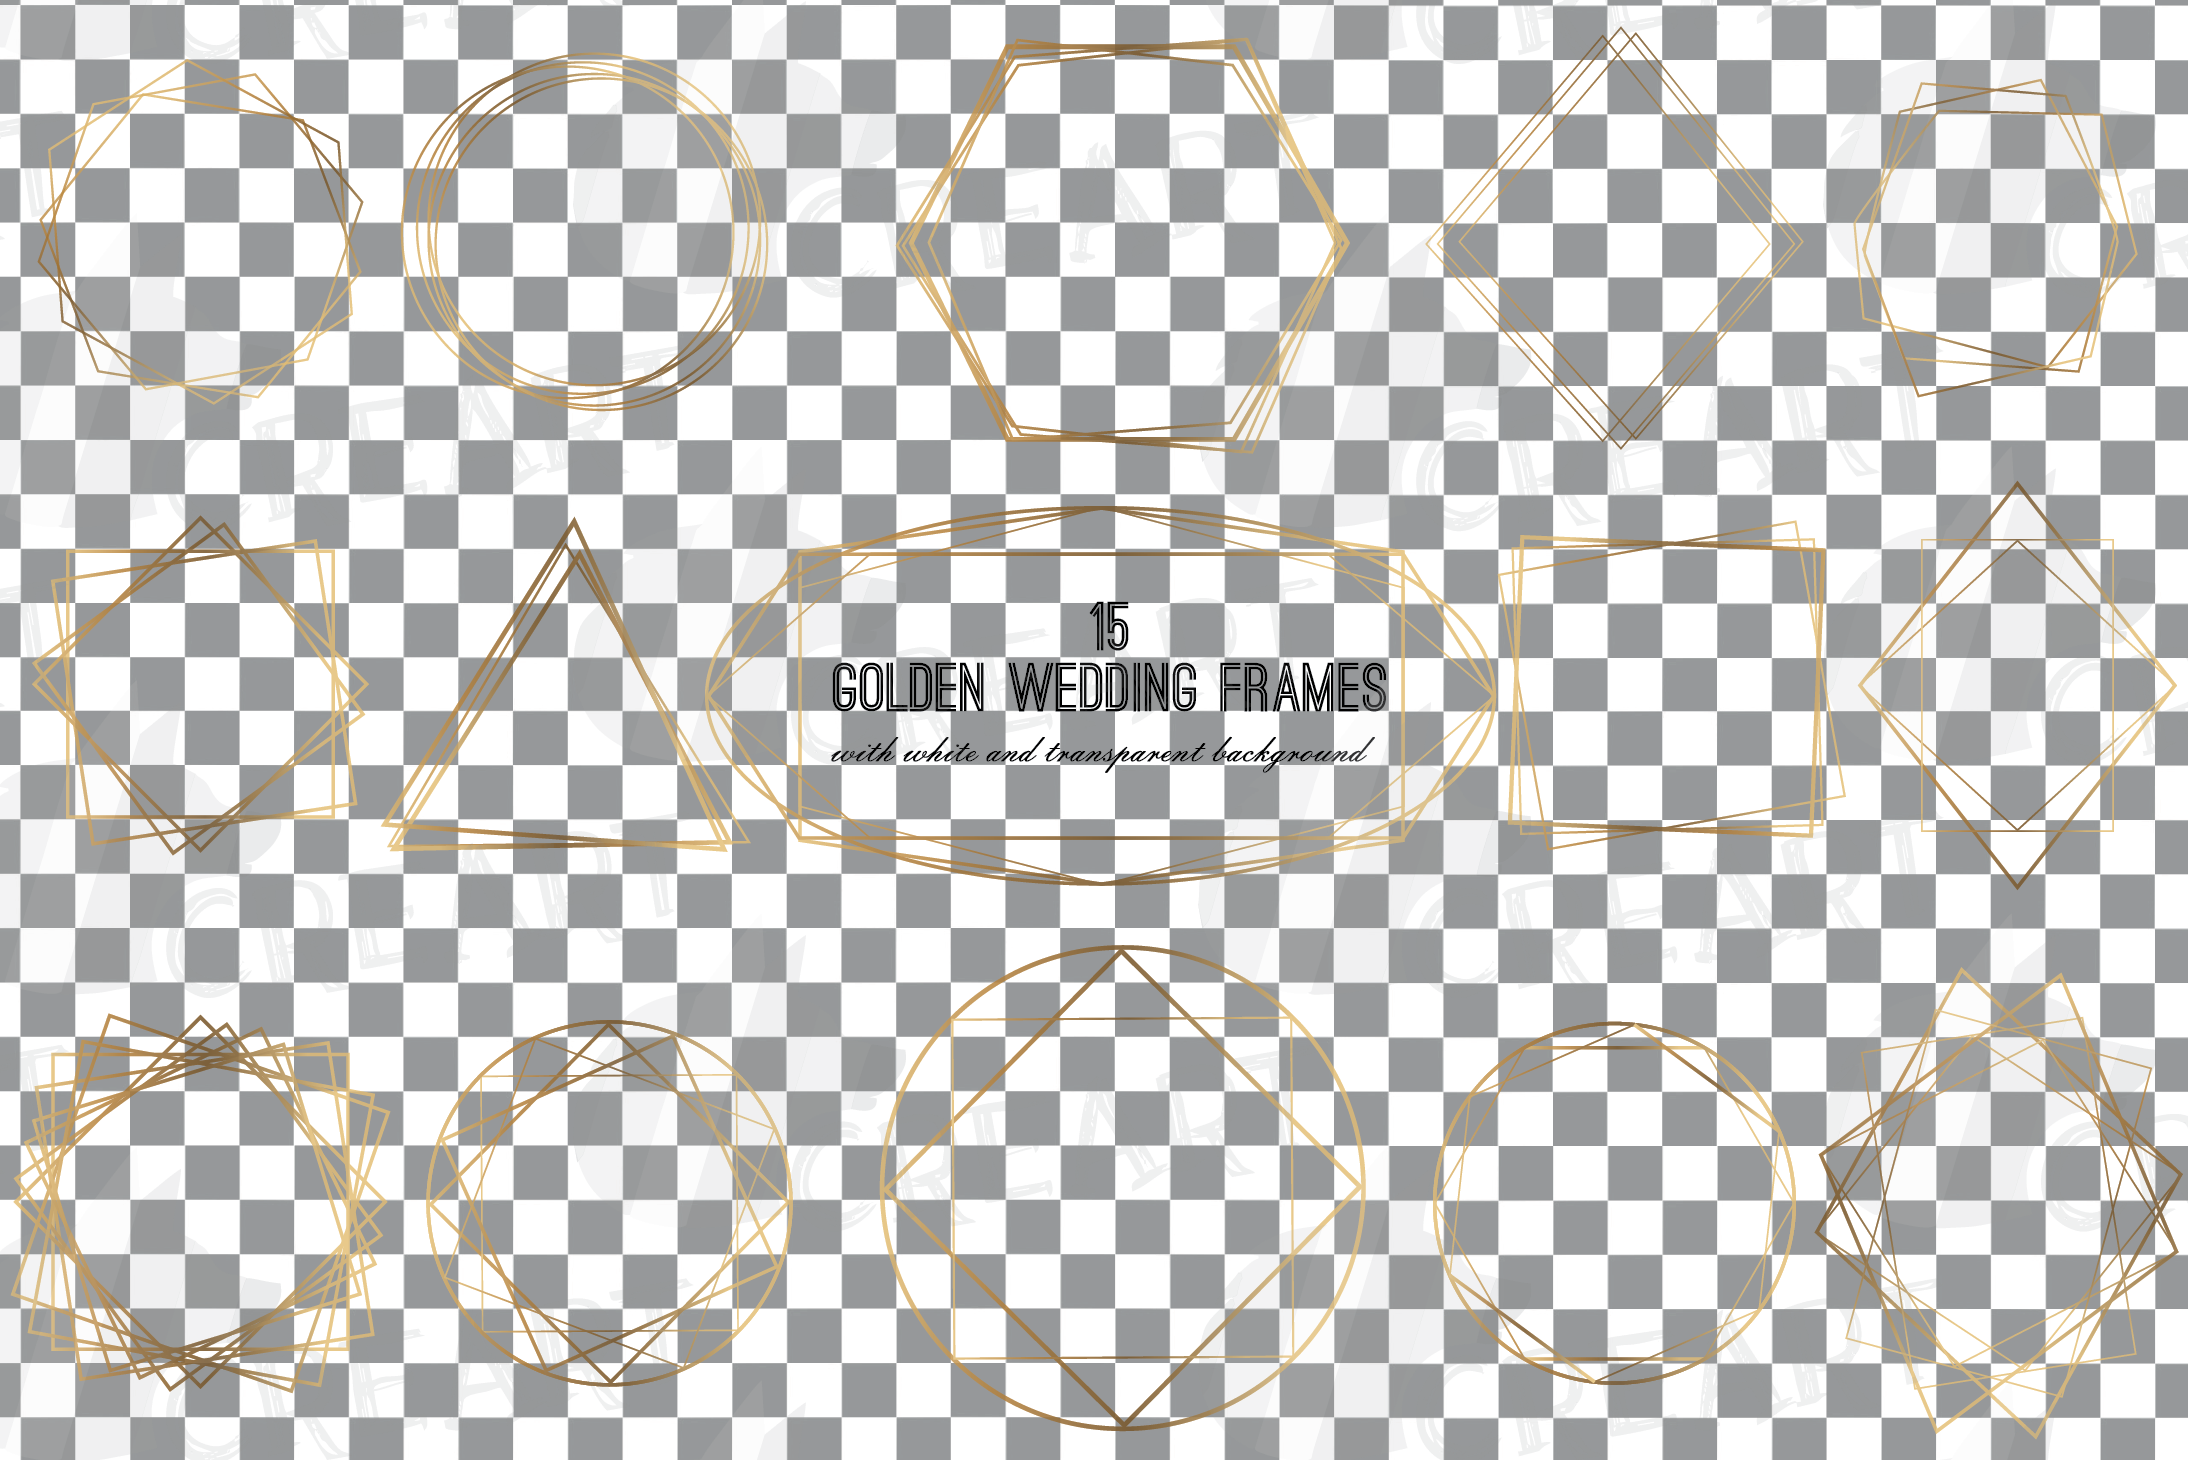 Elegant wedding geometric golden frames, lineal frames svg example image 3